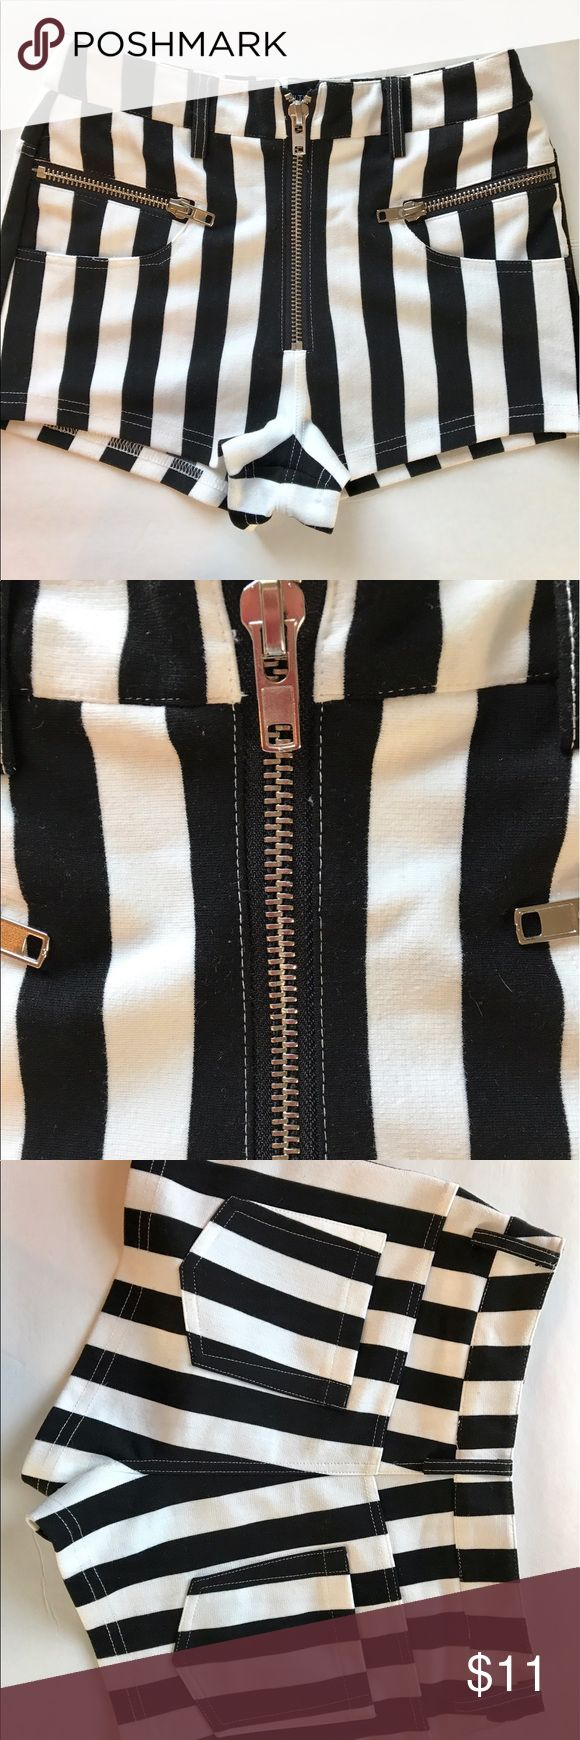 High waisted black and white stripes shorts Like new!!! Worn once. High wasted shorts. Striped black and white. Zip up front. Pockets in back. Stretchy material Shorts